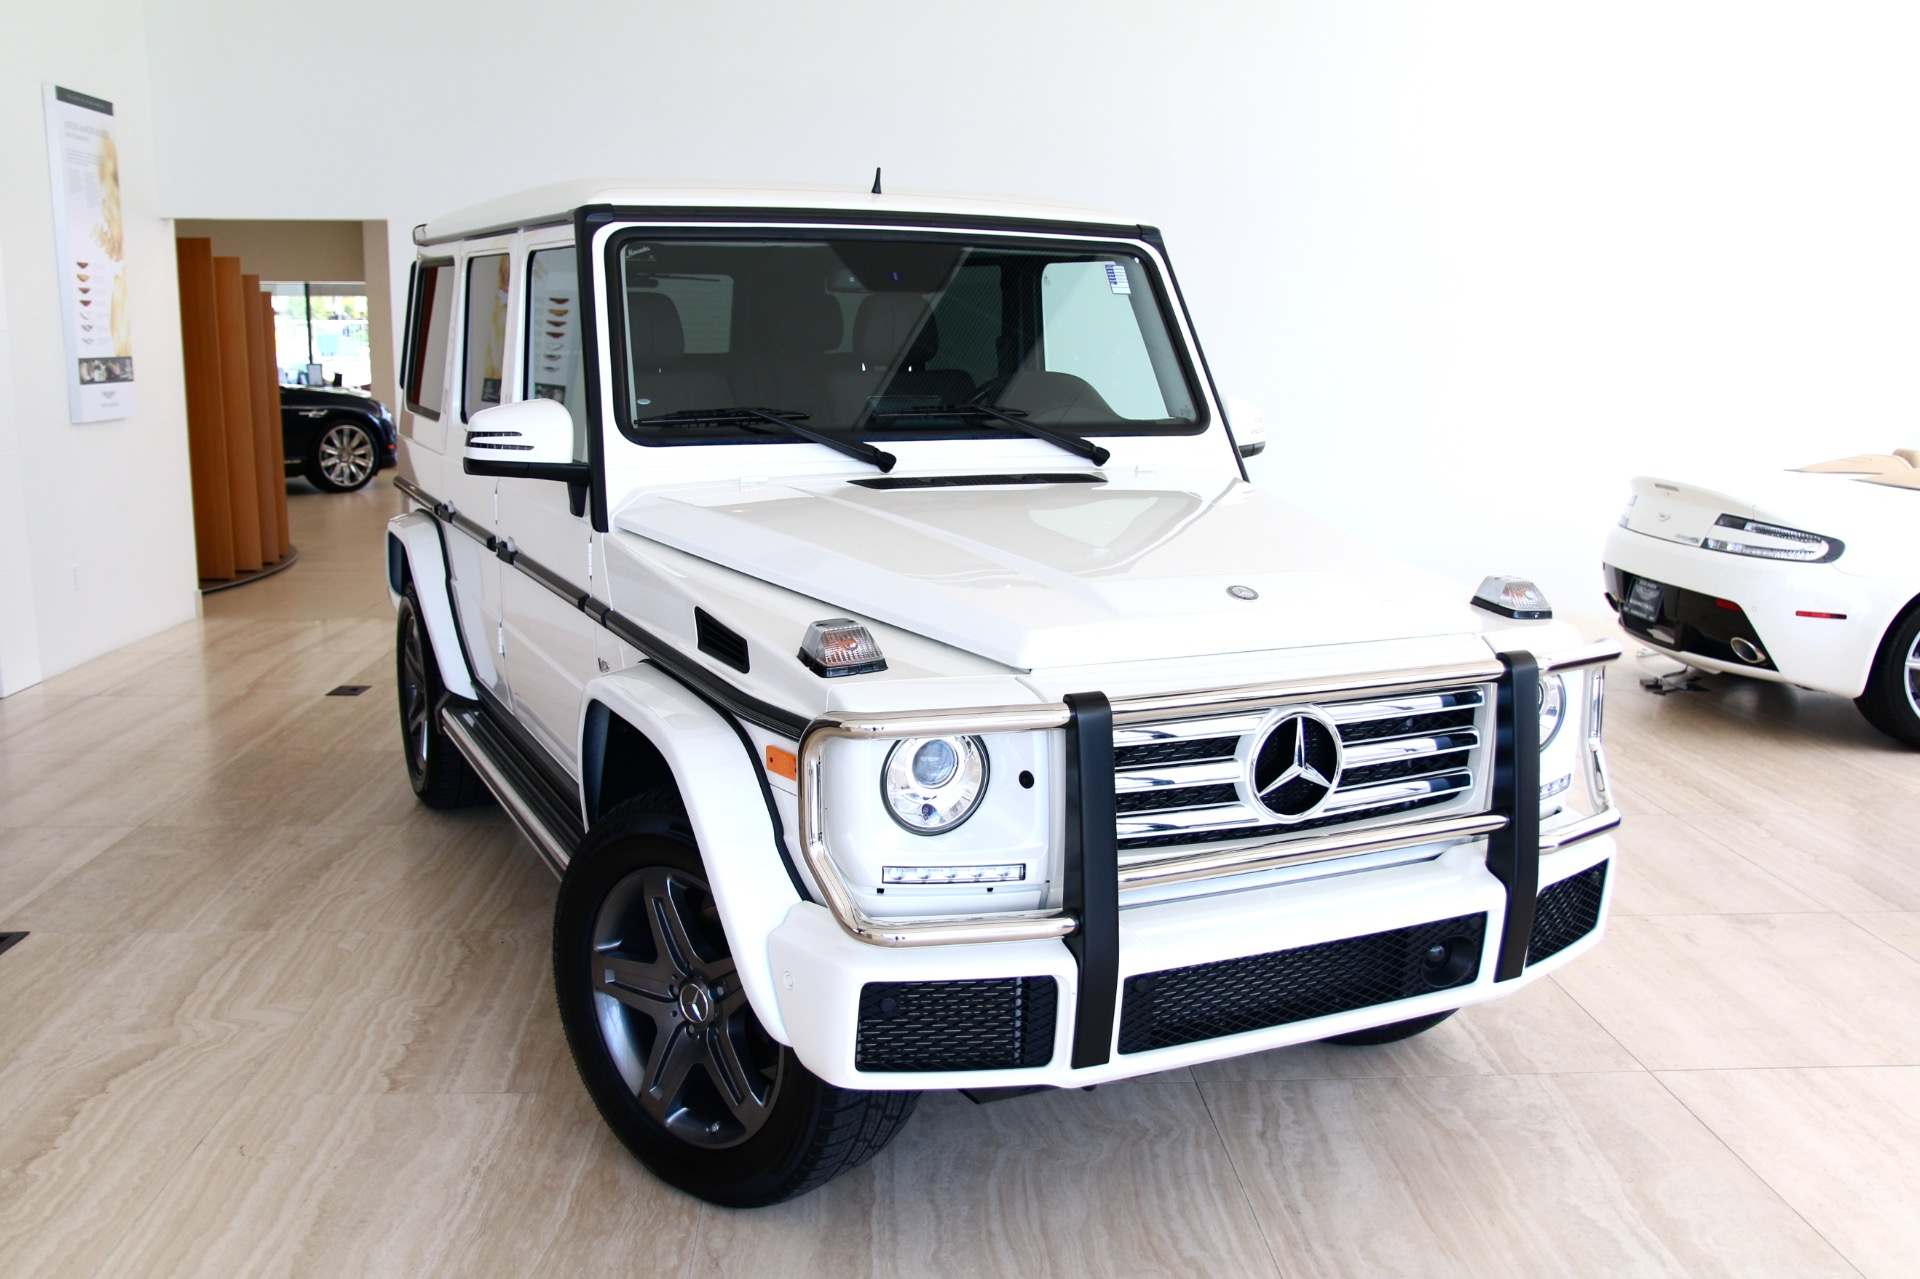 2016 Mercedes Benz G Class G 550 Stock 7NC C for sale near